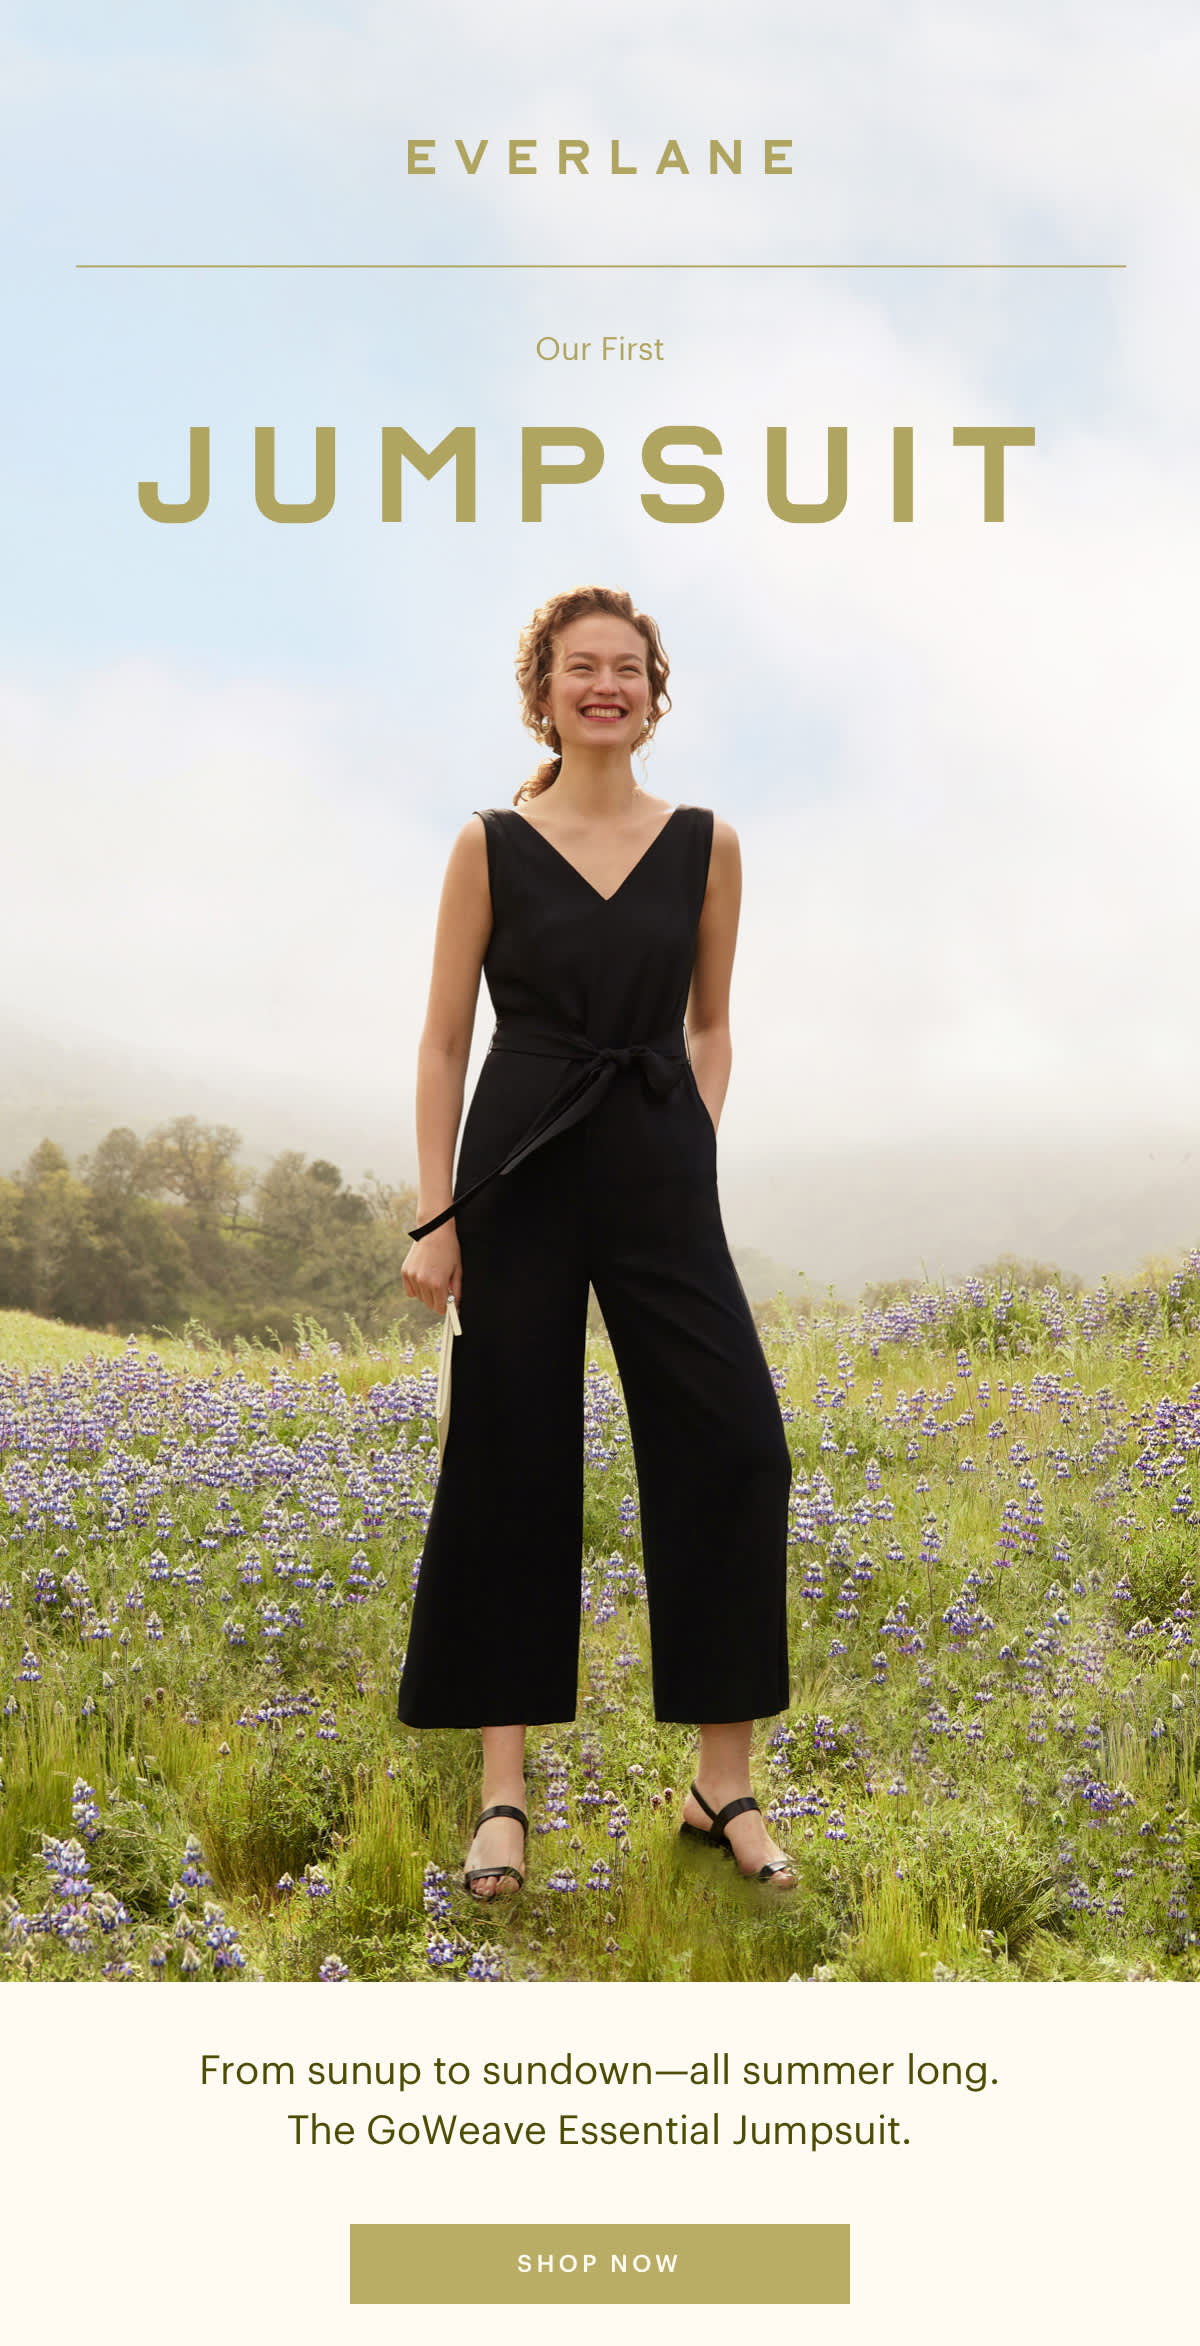 From sunup to sundown--all summer long. The GoWeave Essential Jumpsuit. SHOP NOW